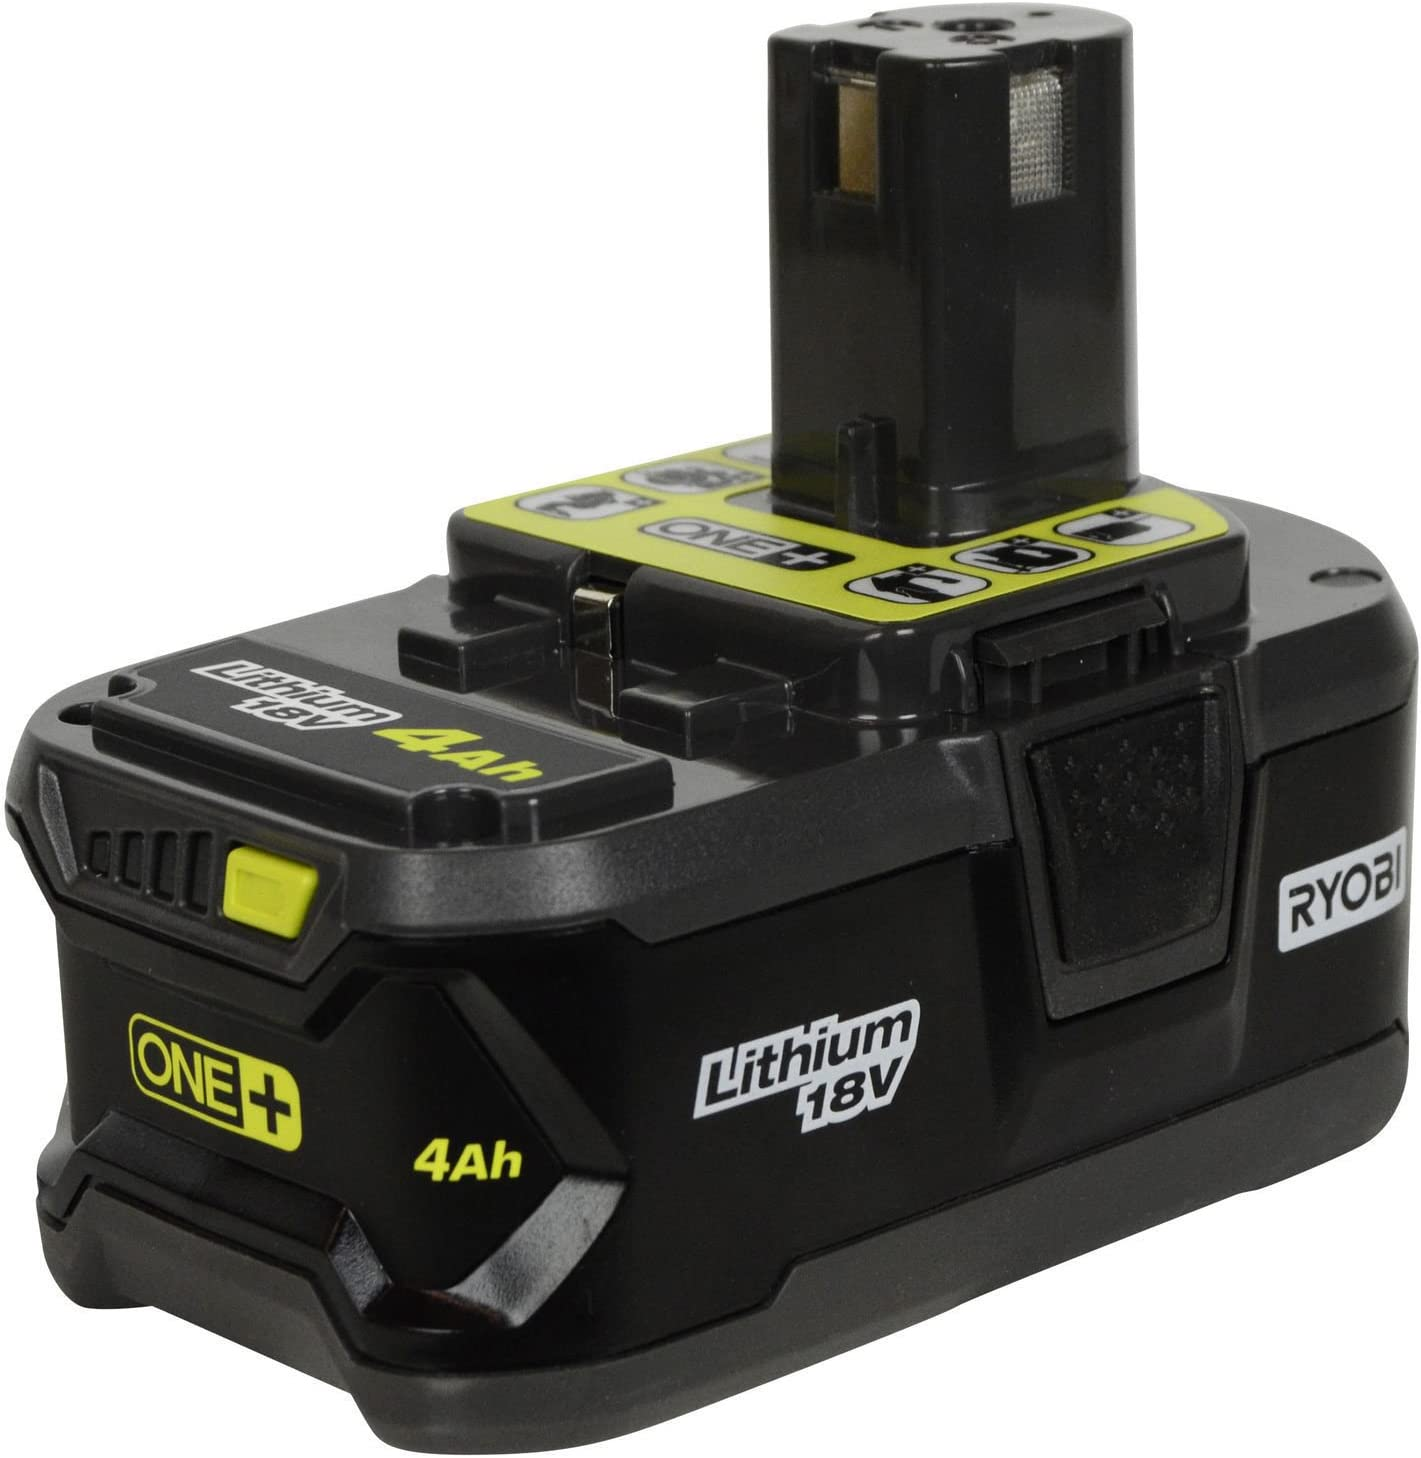 Ryobi P197 Battery ONE + (PLUS) Compatible Replaces P108 Rechargeable Lithium Ion 18 v Volt 4.0 Ah / 72 Wh UL Listed Faster Recharge Single Battery with Fuel Gage